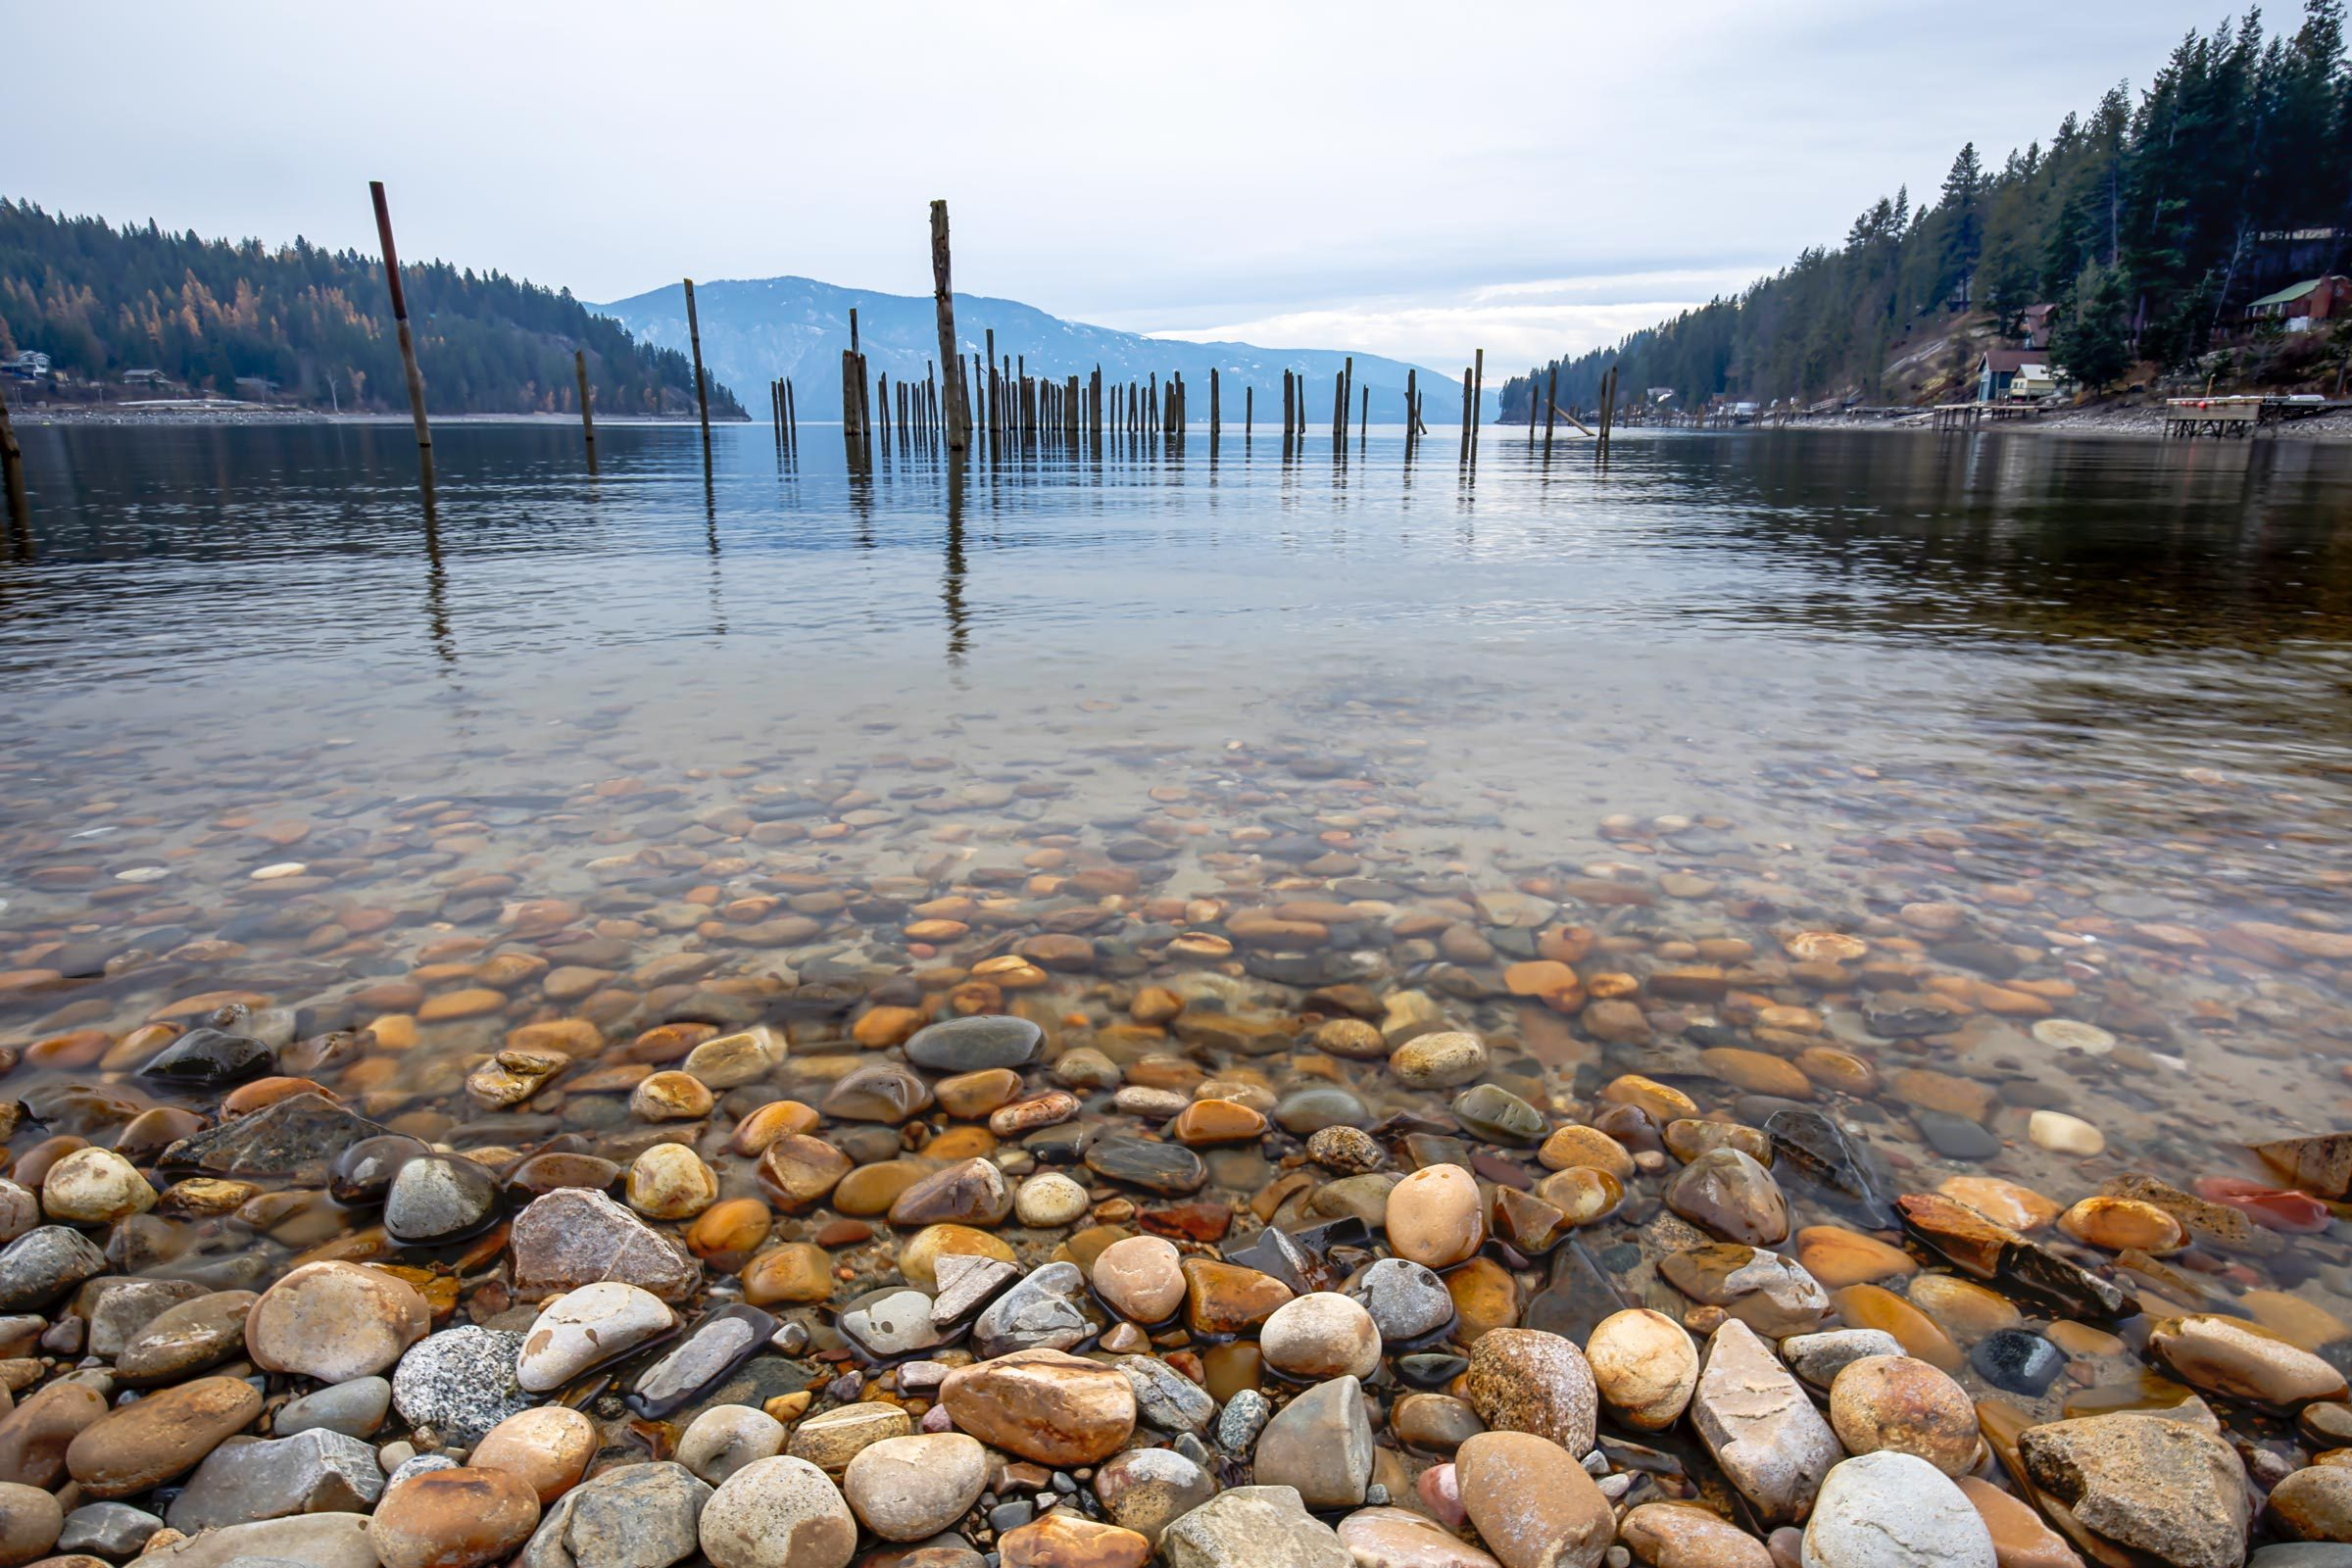 Rocks in the clear water in Pend Oreille Lake at Garfield Bay just south of Sandpoint, Idaho